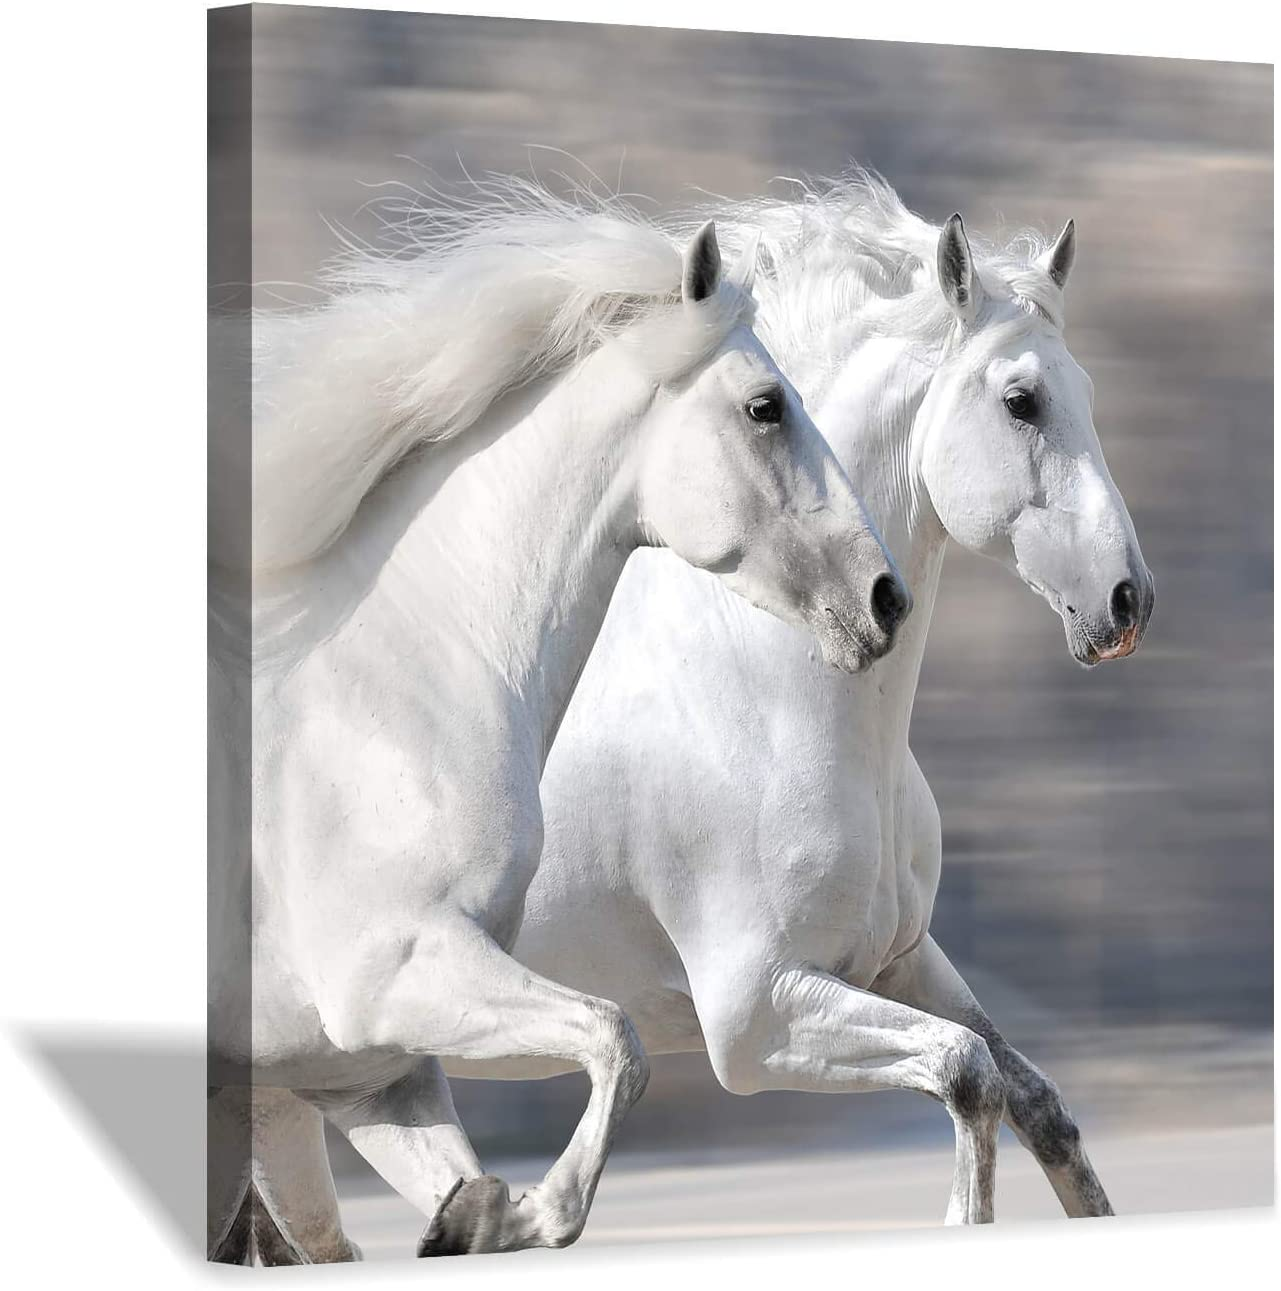 "Hardy Gallery White Horse Picture Wall Art: Running Animal Artwork Painting Print on Wrapped Canvas for Living Room or Office (36"" x 36"" x 1 Panel)"